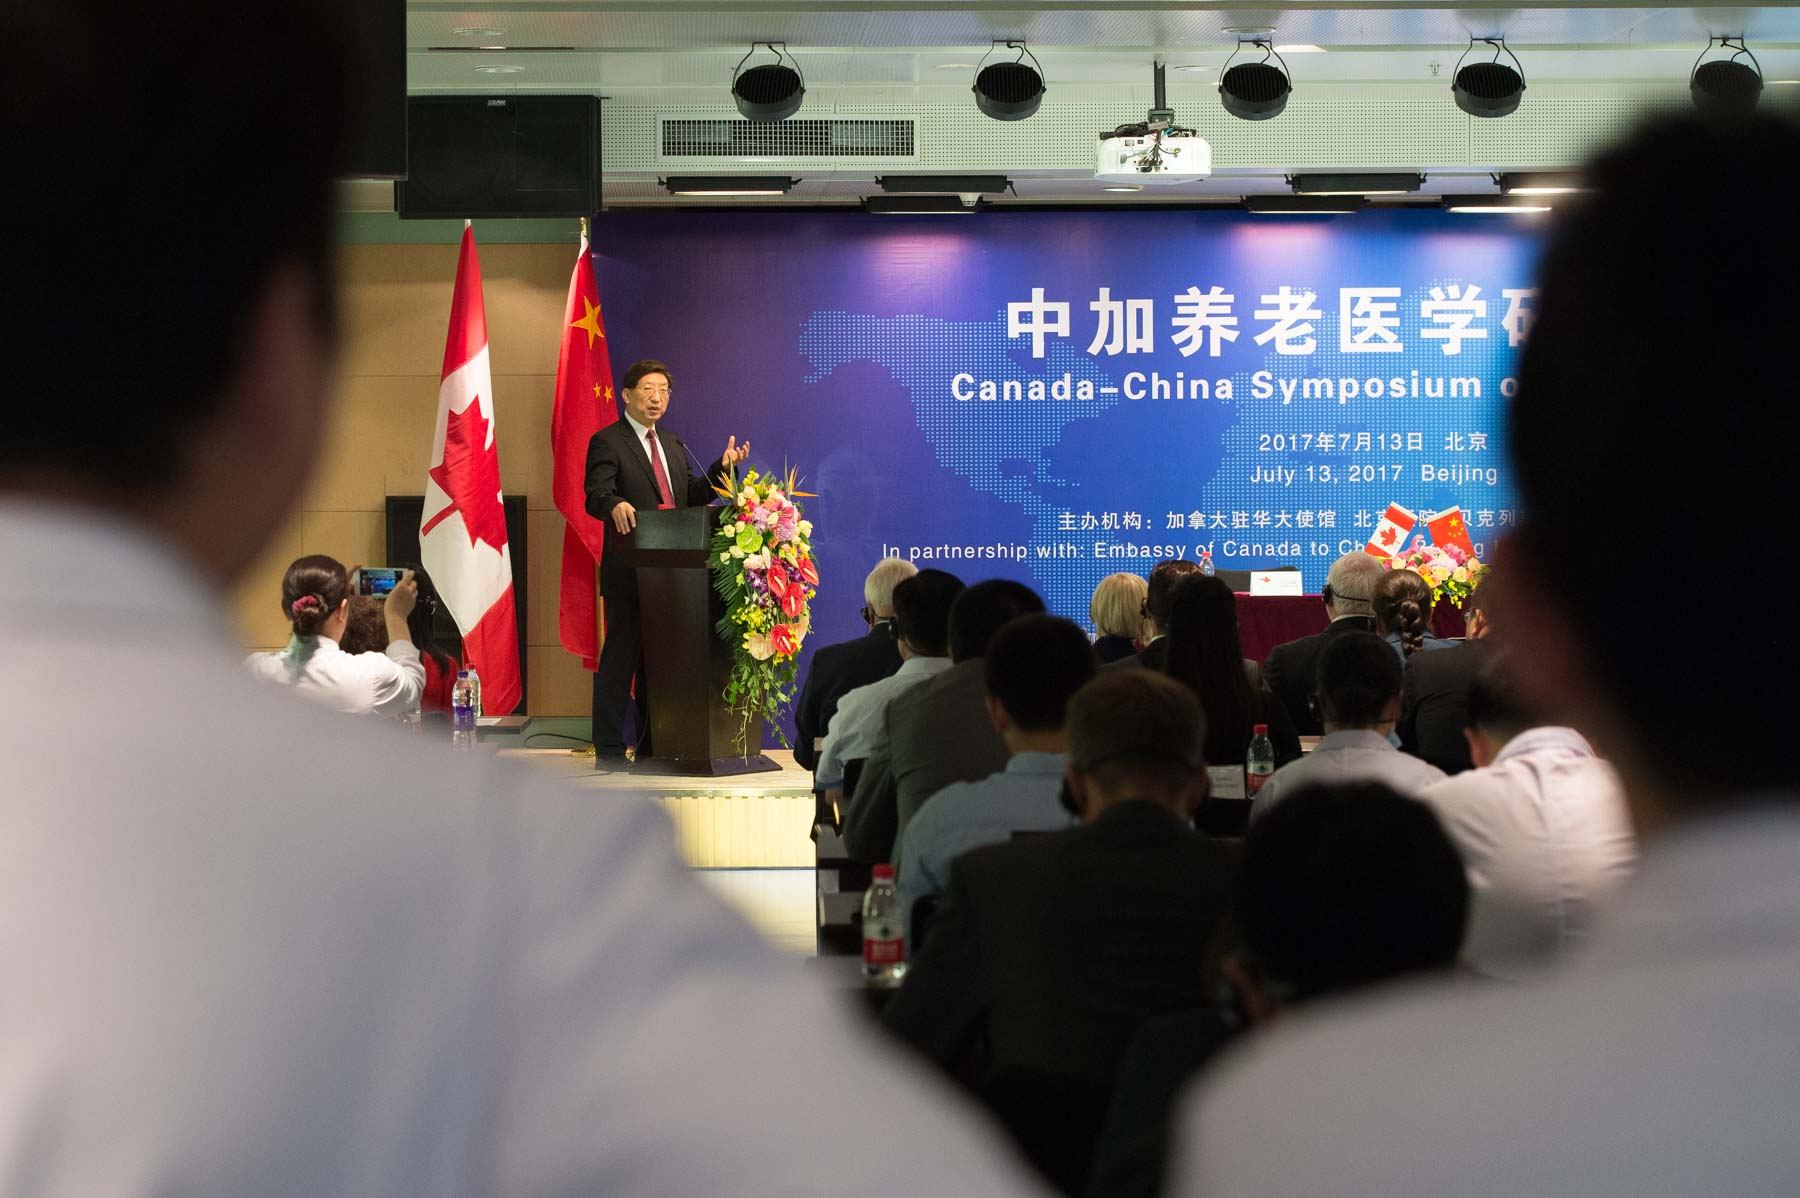 This event was hosted by Beijing Hospital in partnership with Baycrest Global Solutions. Baycrest Global Solutions is affiliated with Toronto's Baycrest Hospital and provides expertise in aging and brain health.